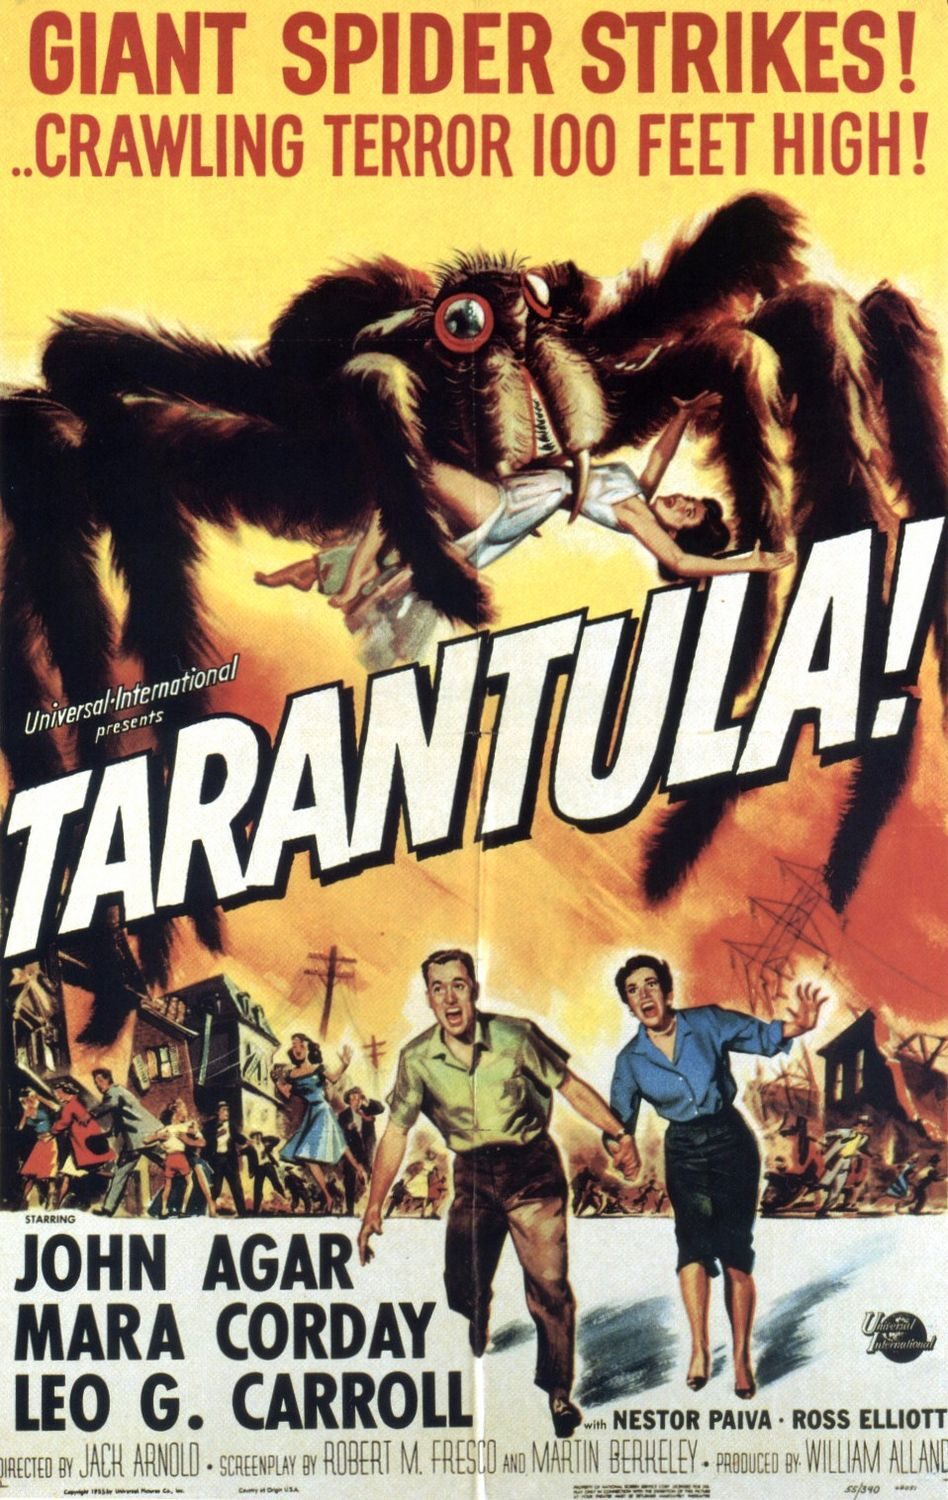 Tarantula (1955) -  cult horror scifi film poster - giant spider invasion